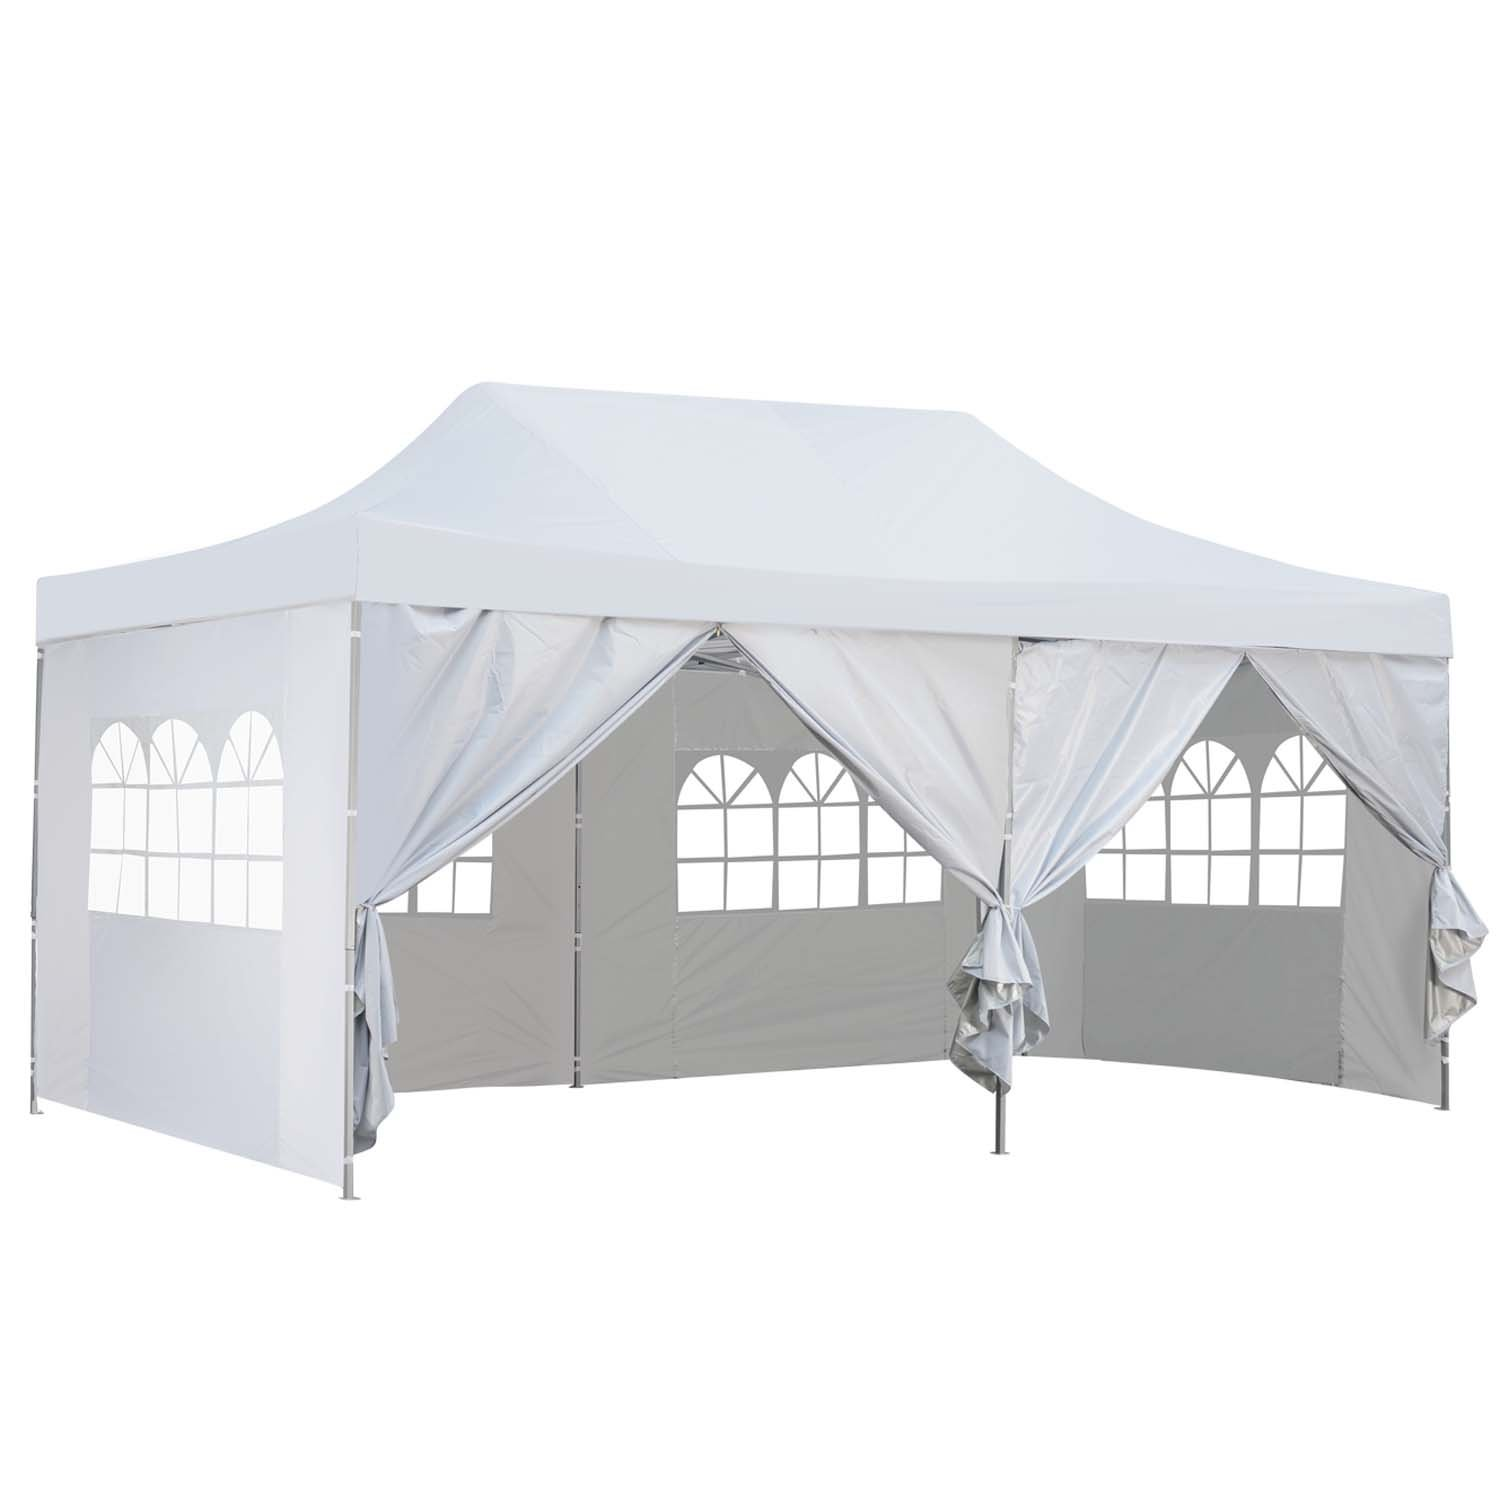 Outdoor Basic 10x20 Ft Pop up Canopy Party Wedding Gazebo Tent Shelter with Removable Side Walls White by Outdoor Basic (Image #1)